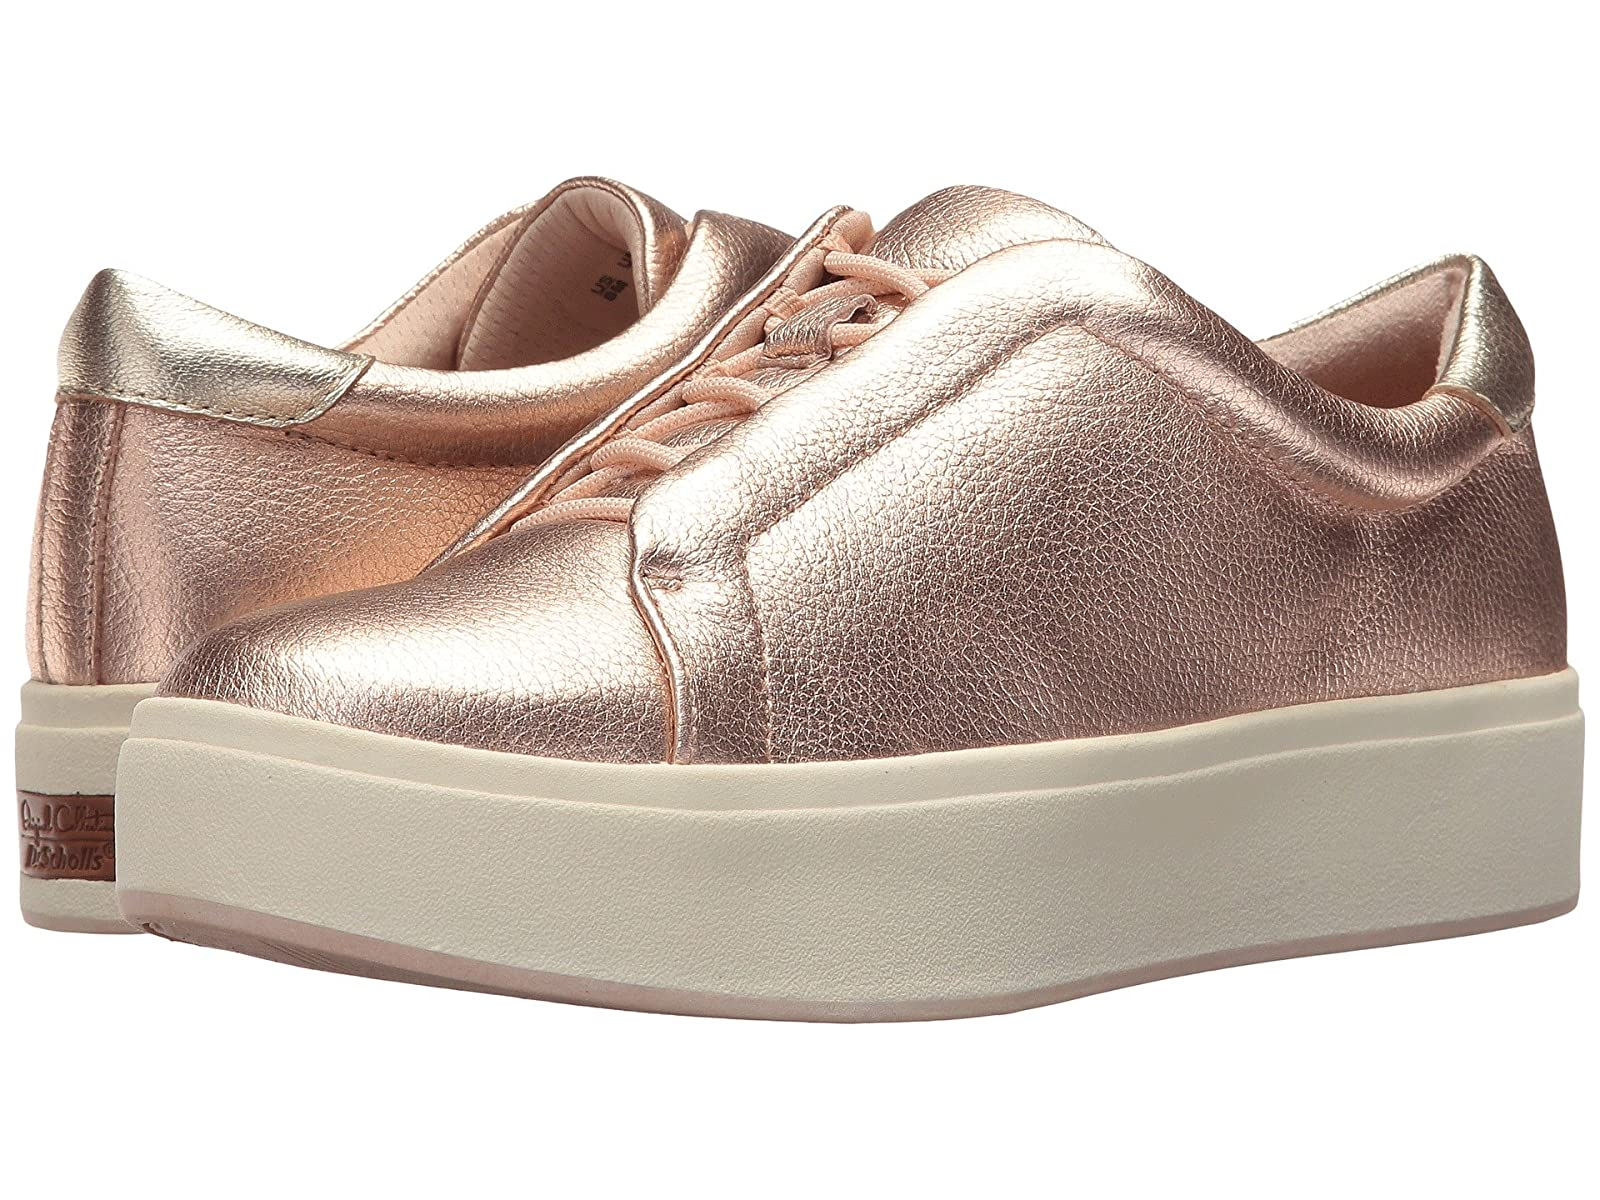 Dr. Scholl's Abbot Lace Original CollectionAtmospheric grades have affordable shoes